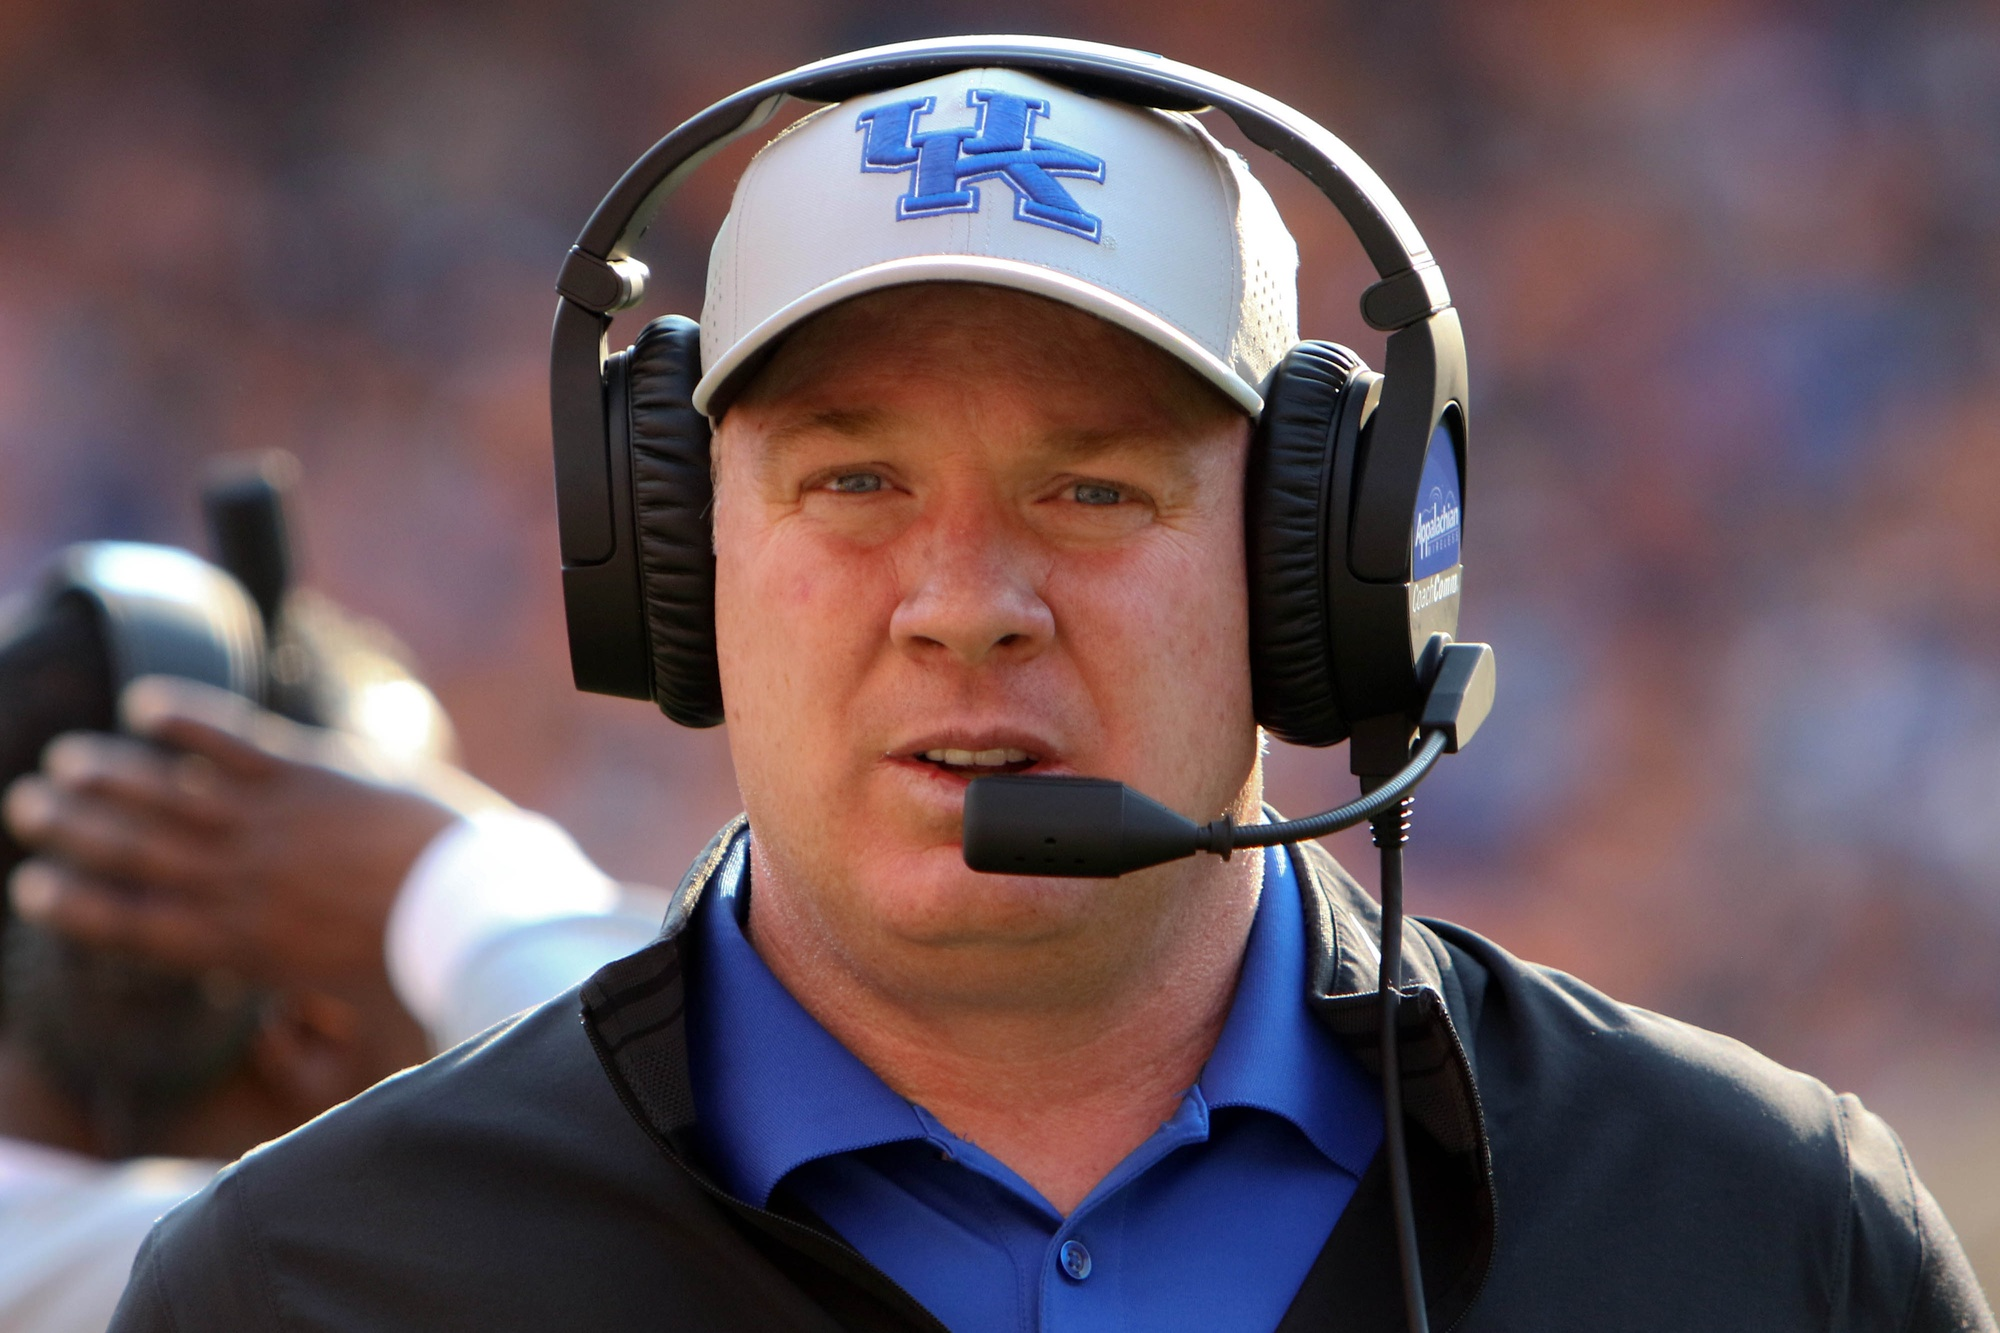 Nov 12, 2016; Knoxville, TN, USA; Kentucky Wildcats head coach Mark Stoops during the third quarter against the Tennessee Volunteers at Neyland Stadium. Mandatory Credit: Randy Sartin-USA TODAY Sports